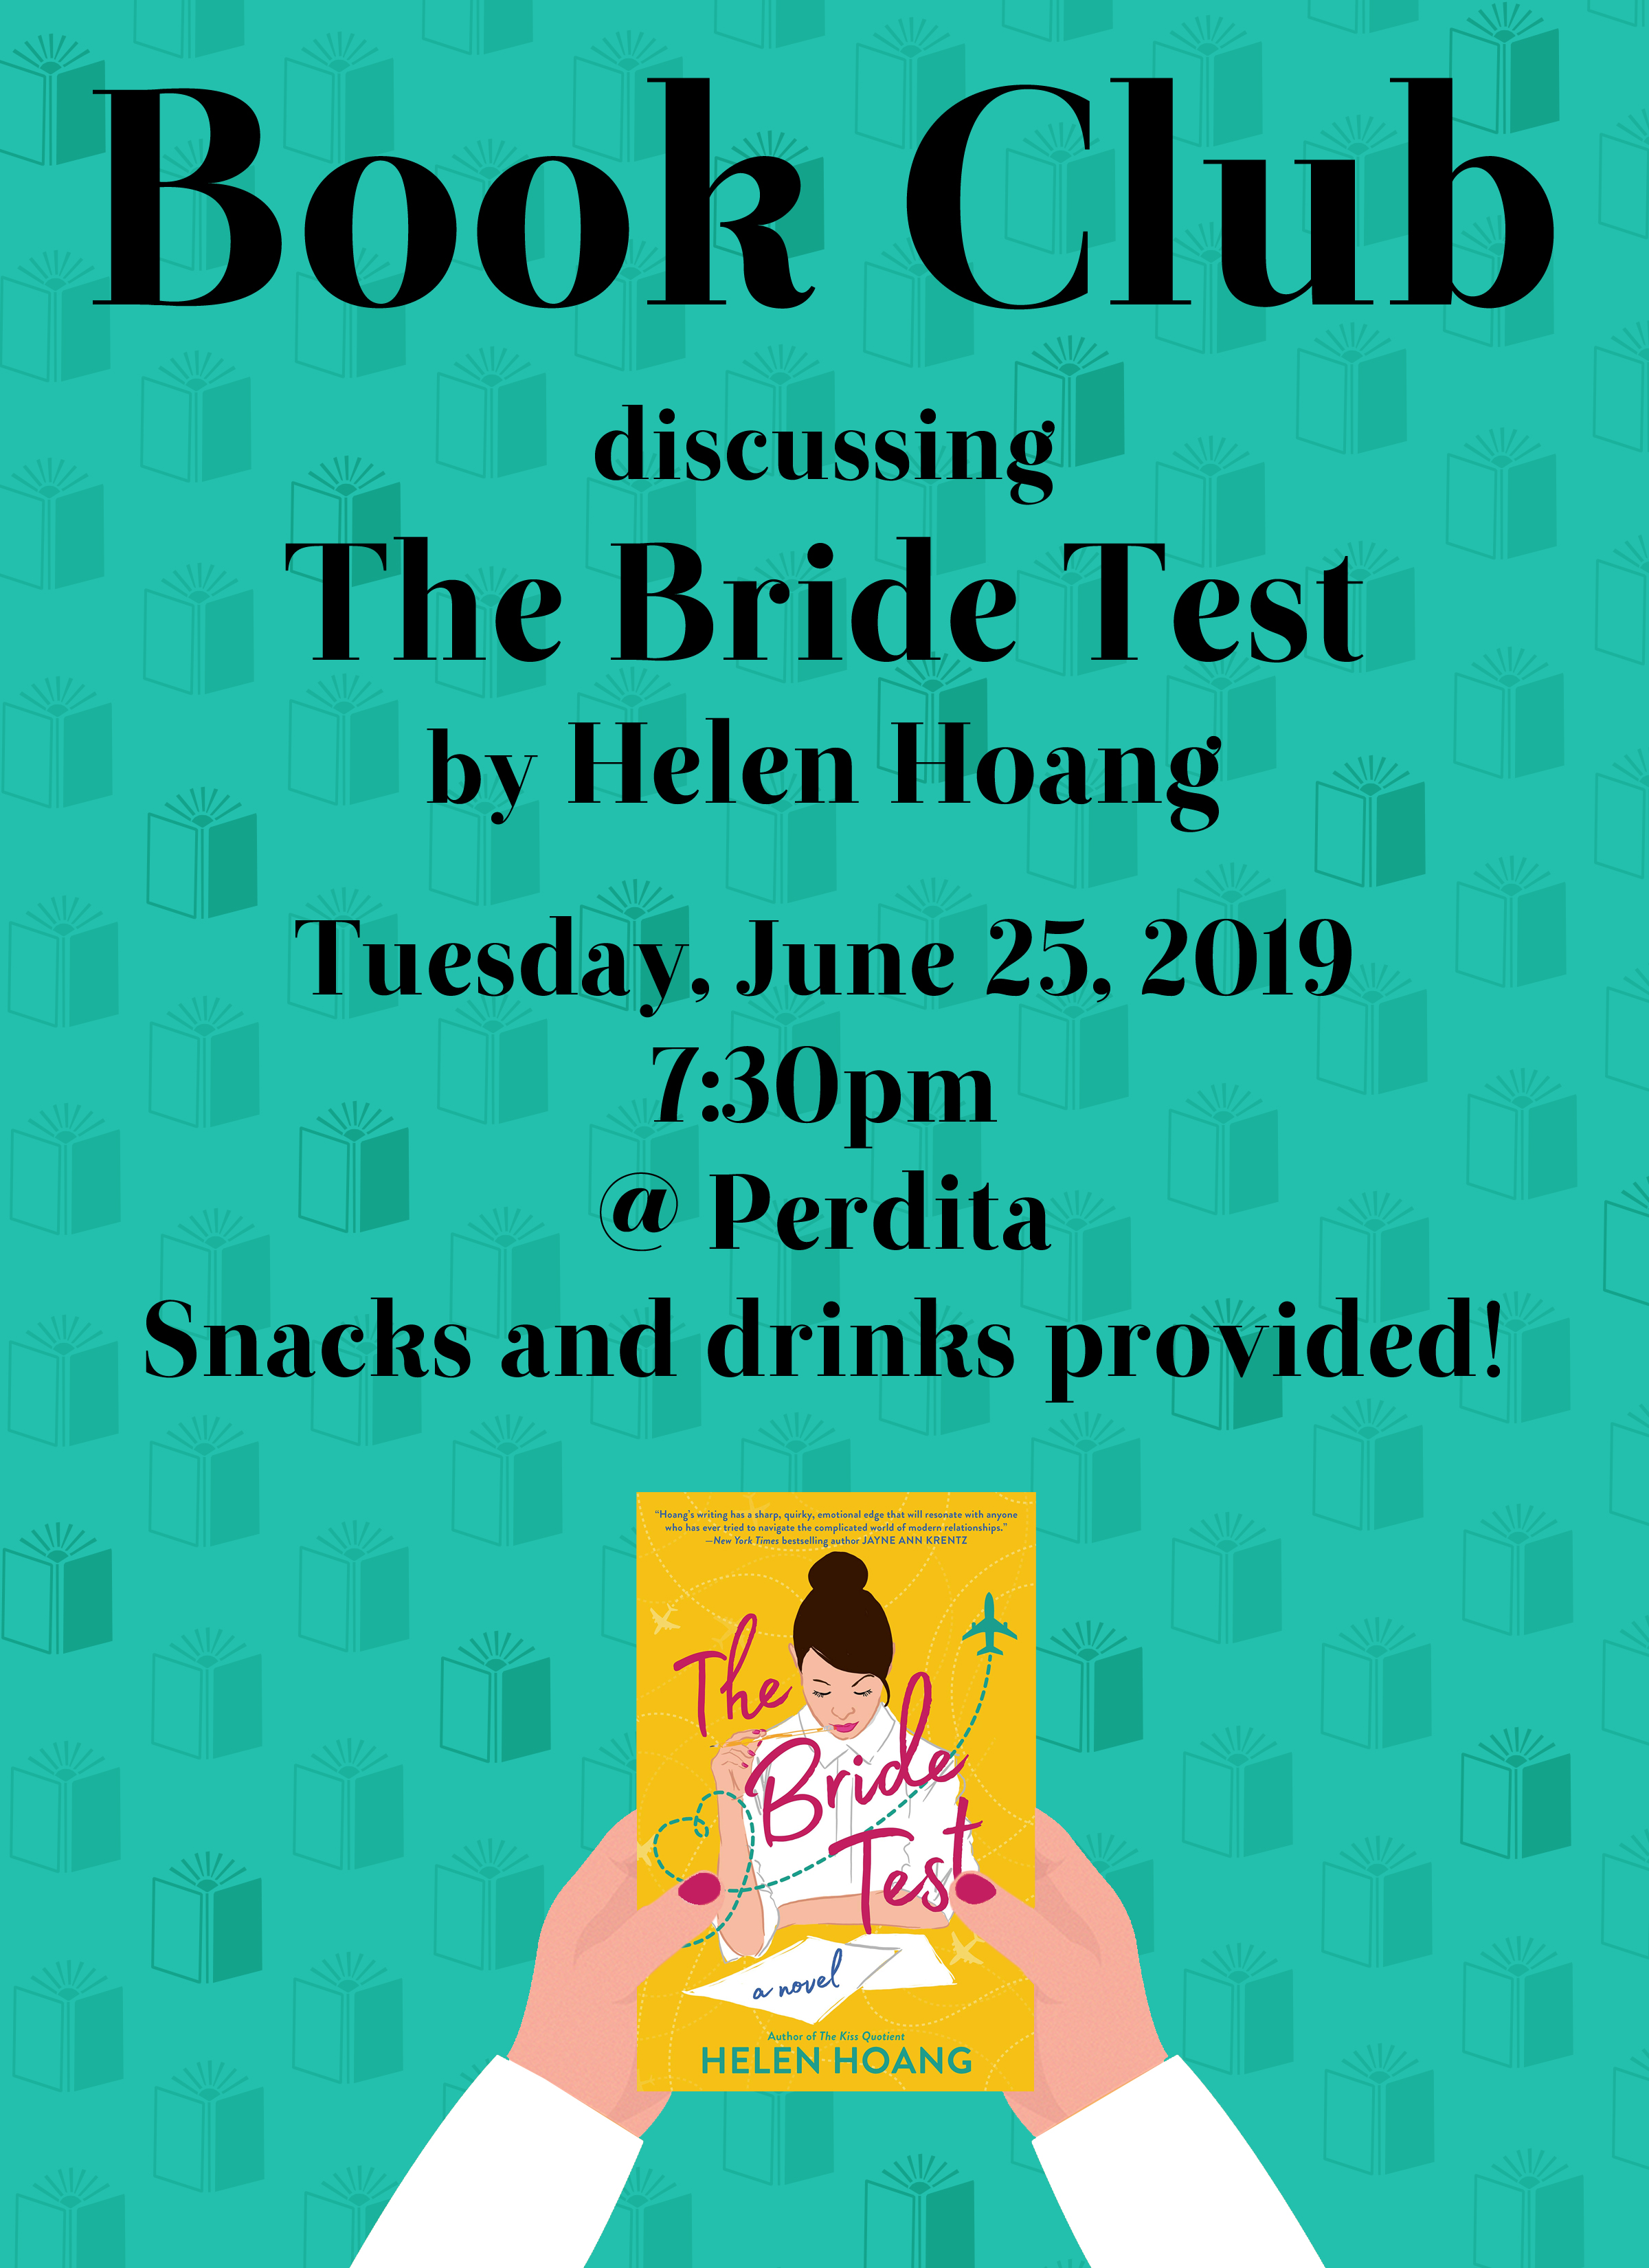 book club invite perdita the bride test.jpg